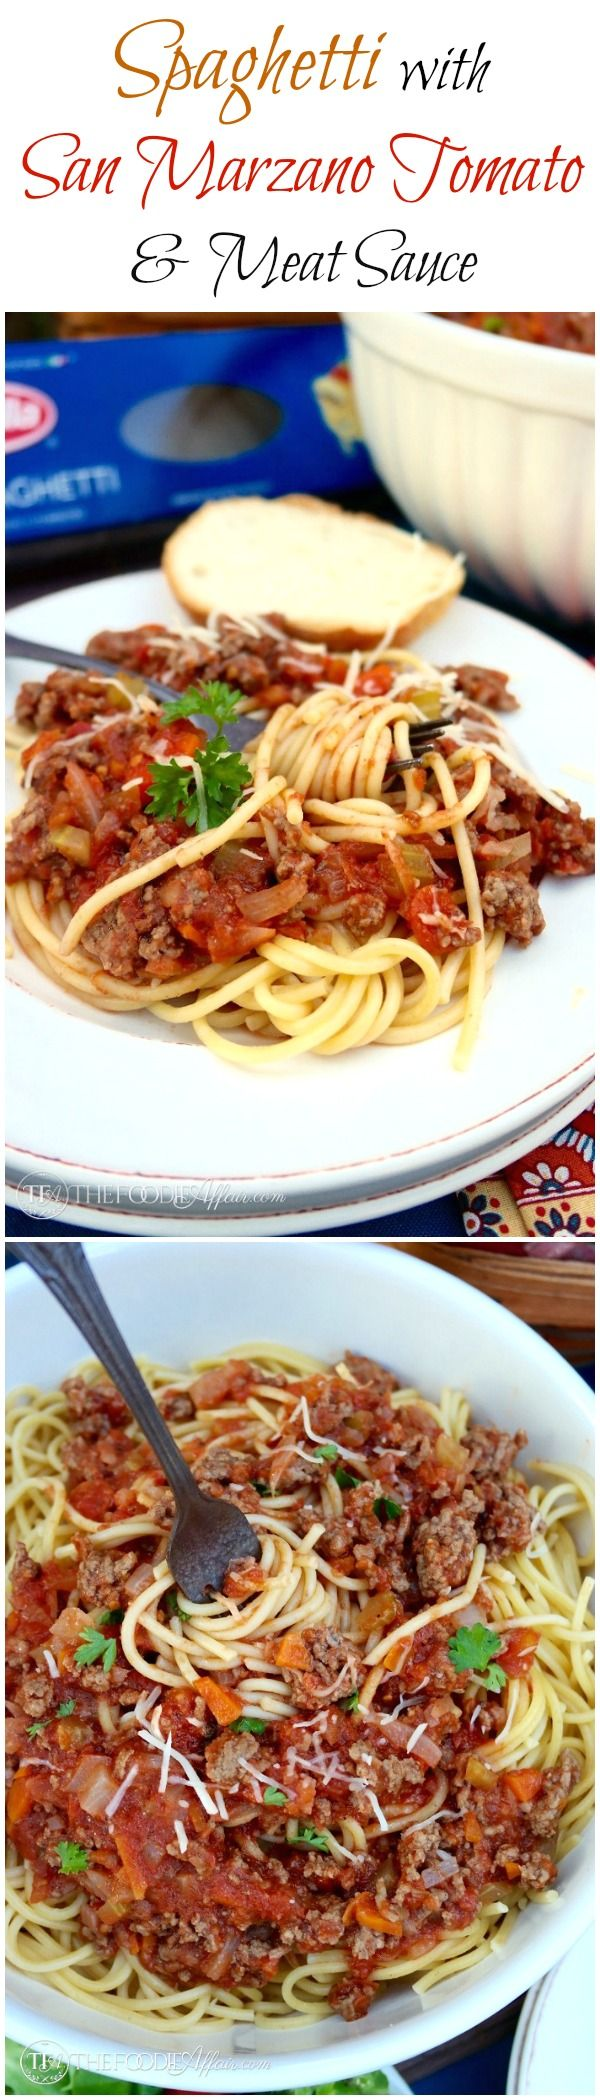 Easy homemade meat sauce with carrot, celery, and San Marzano tomatoes tops Barilla® spaghetti! The Foodie Affair #sponsored #pasta #spaghetti